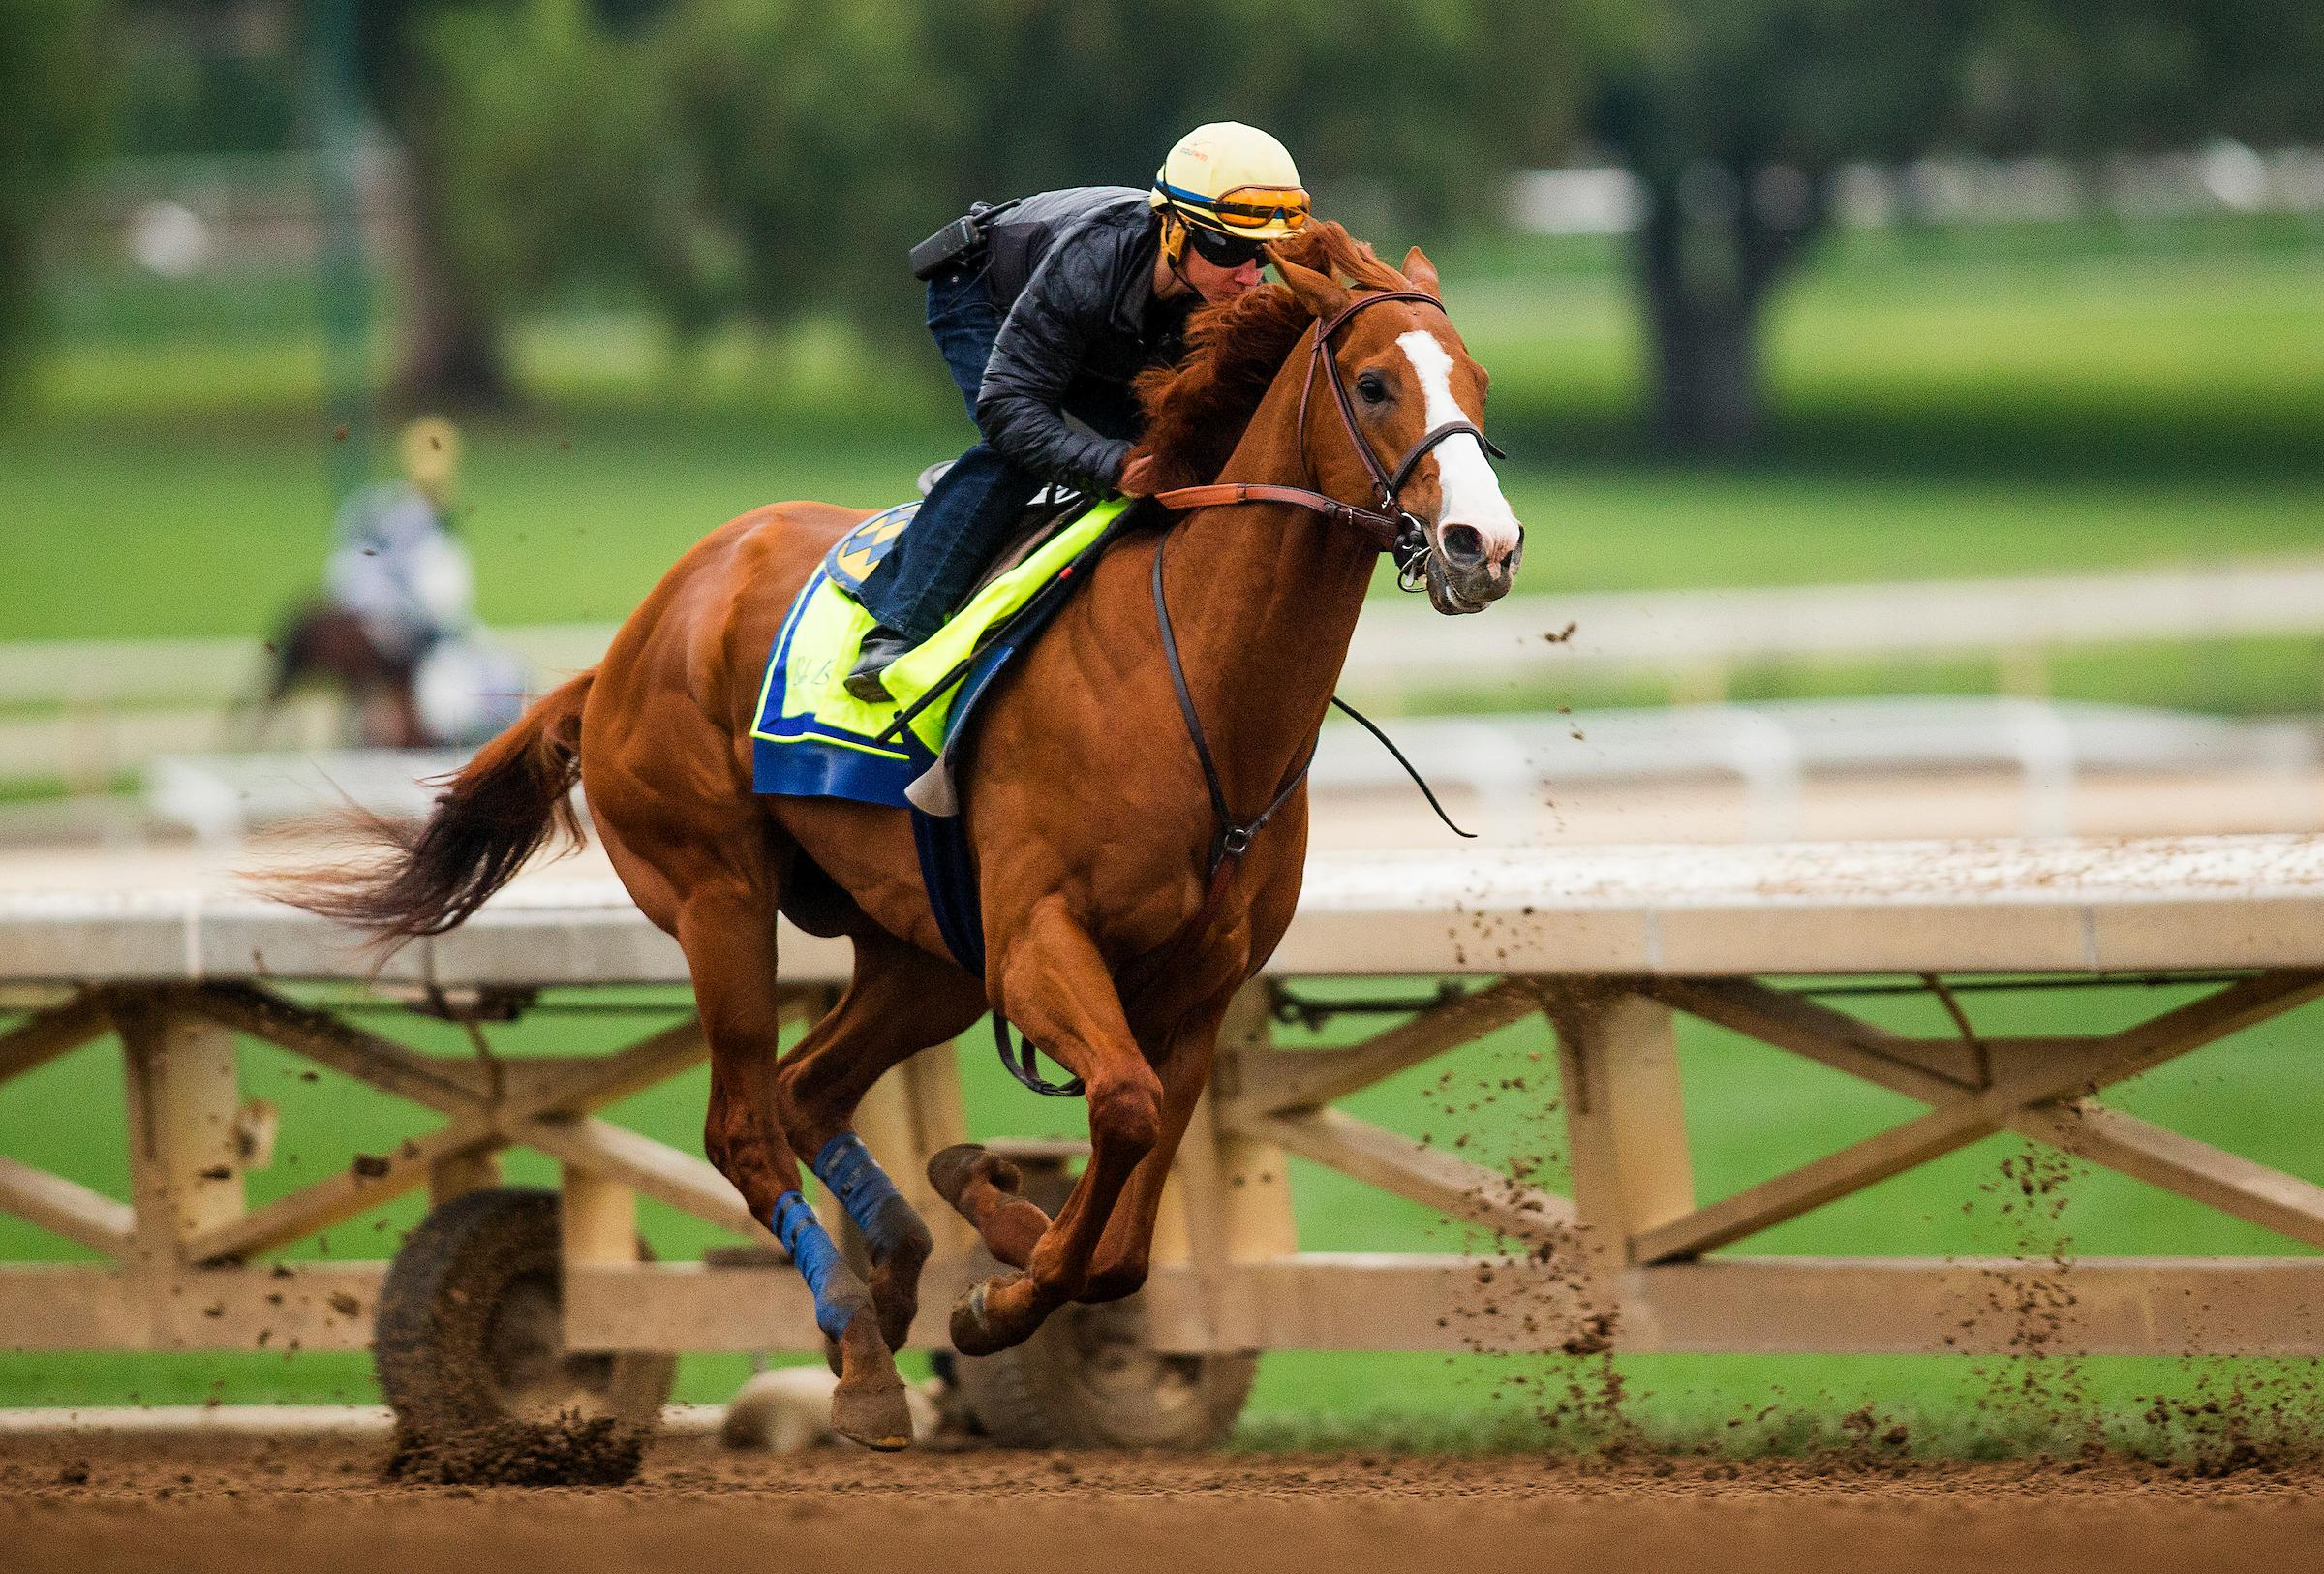 Justify Draws Post 7 In The Preakness Virginia Horse Racing